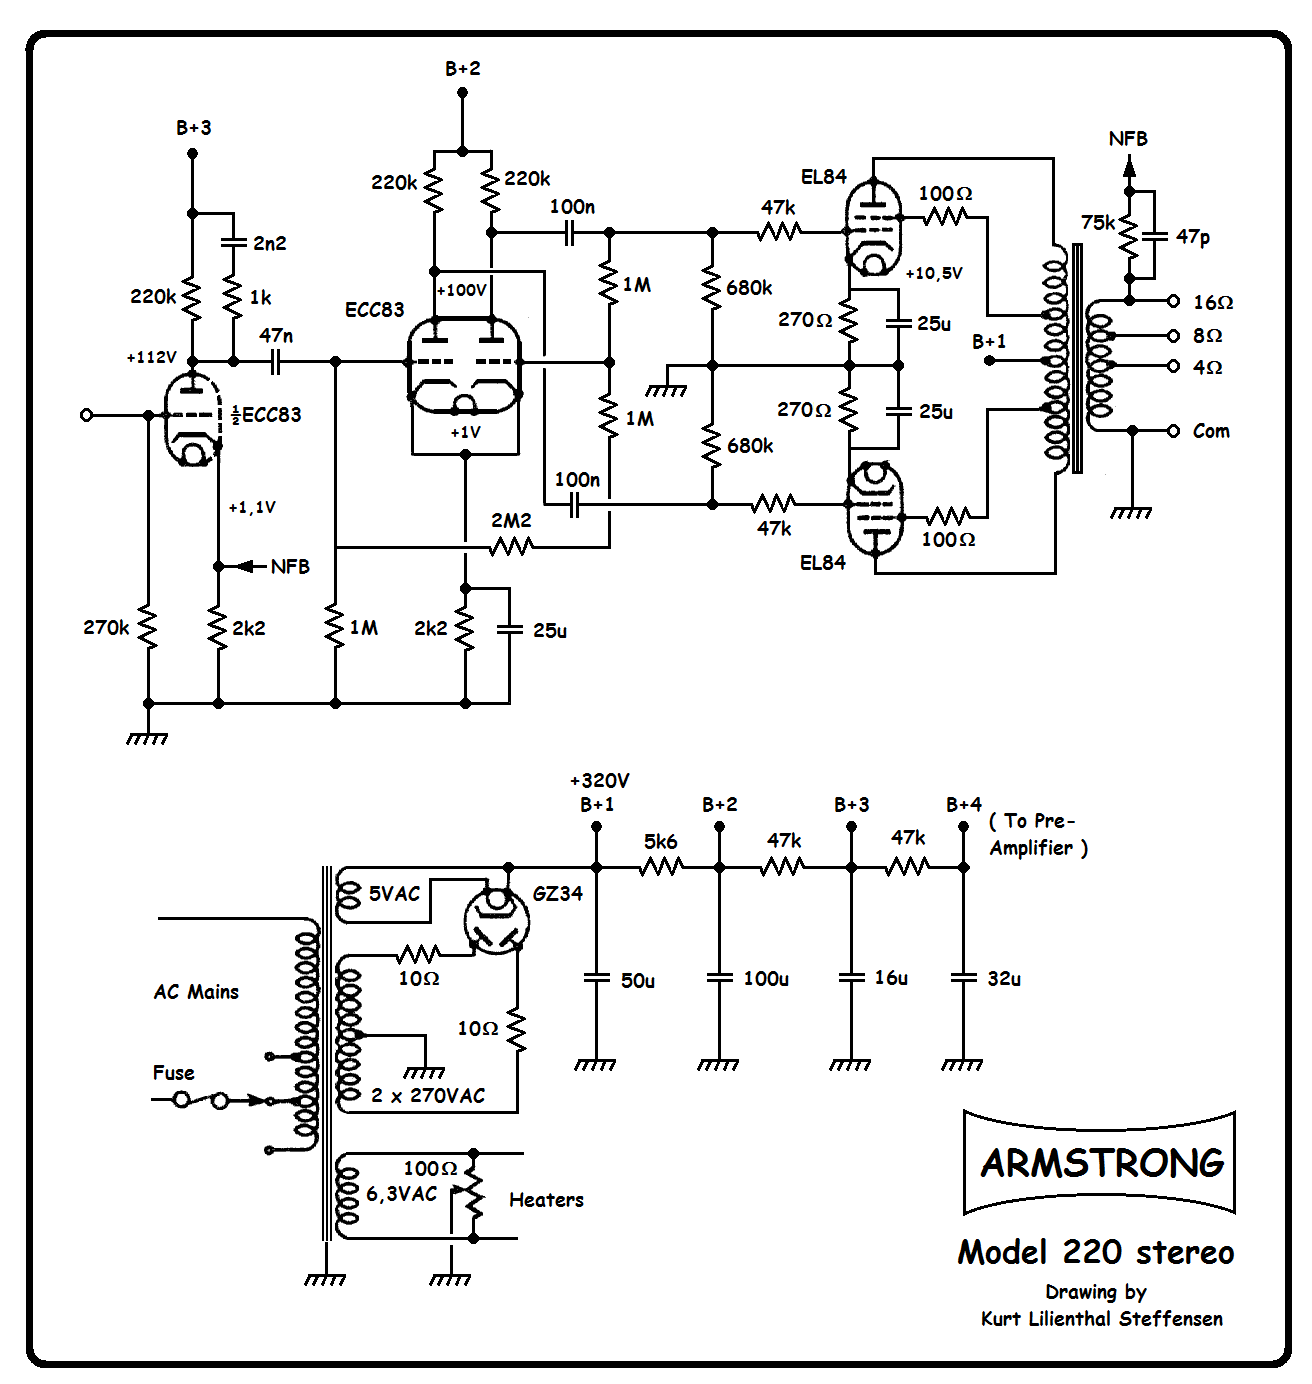 Diy A By Pedal Schematic moreover Viewtopic as well Viewtopic in addition 12AT7 as well 5ar4 Pinout Wiring Diagrams. on 12ax7 pinout diagram